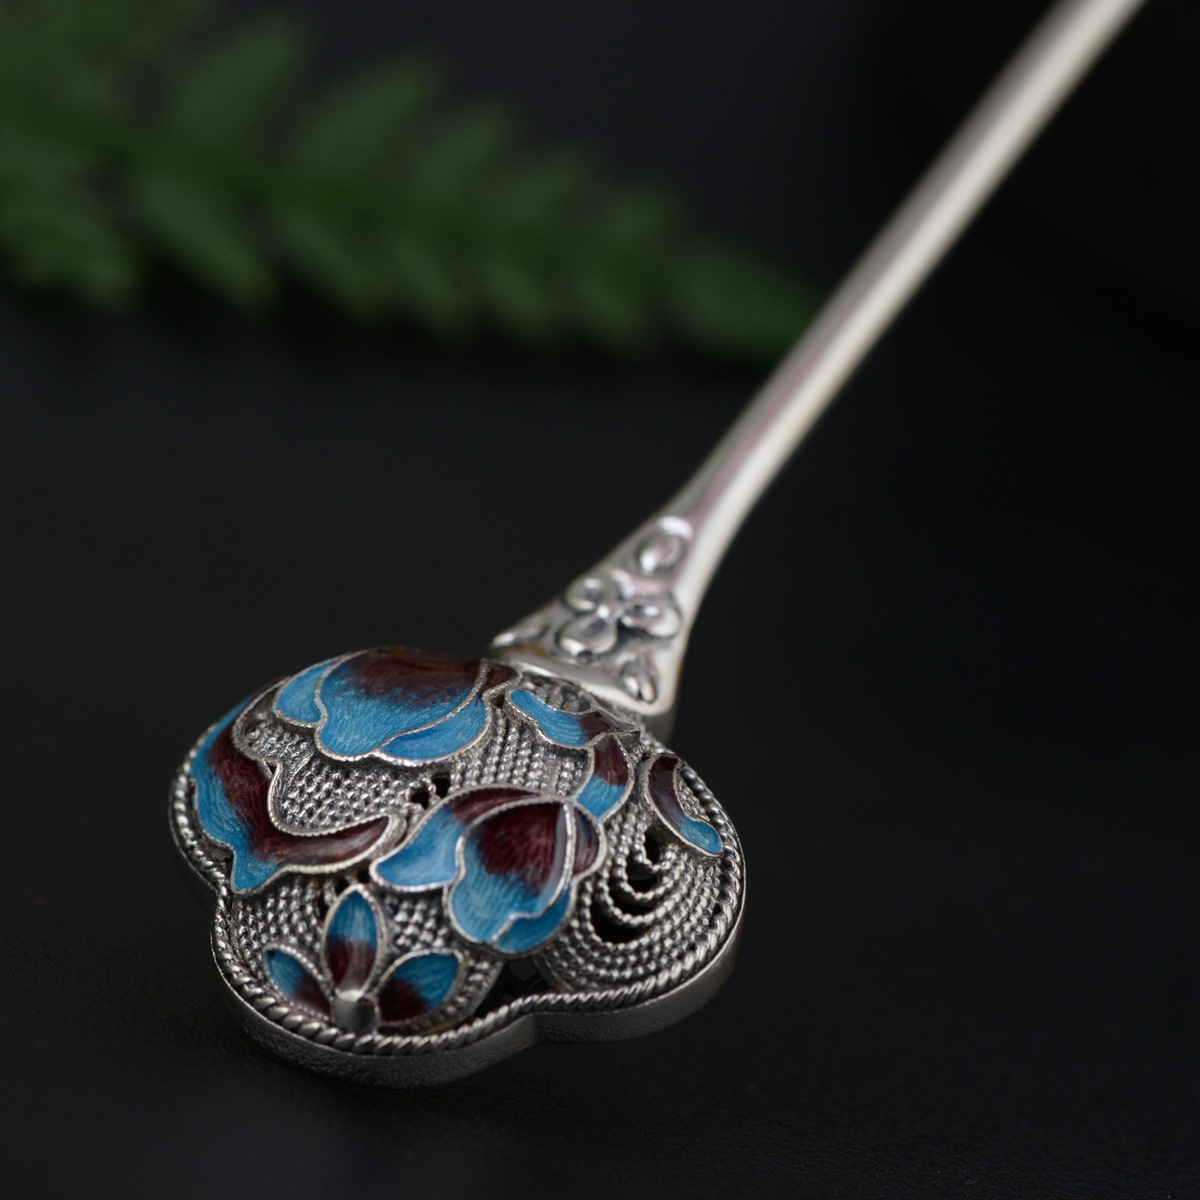 Cloisonne Thai Silver Hair Stick Enamel Silver Chinese Style Hairpin Peony Flower Hair Fork Jewelry Accessories 90x22mm WIGO1283 24050100120 сахарница 100 120 автор раб